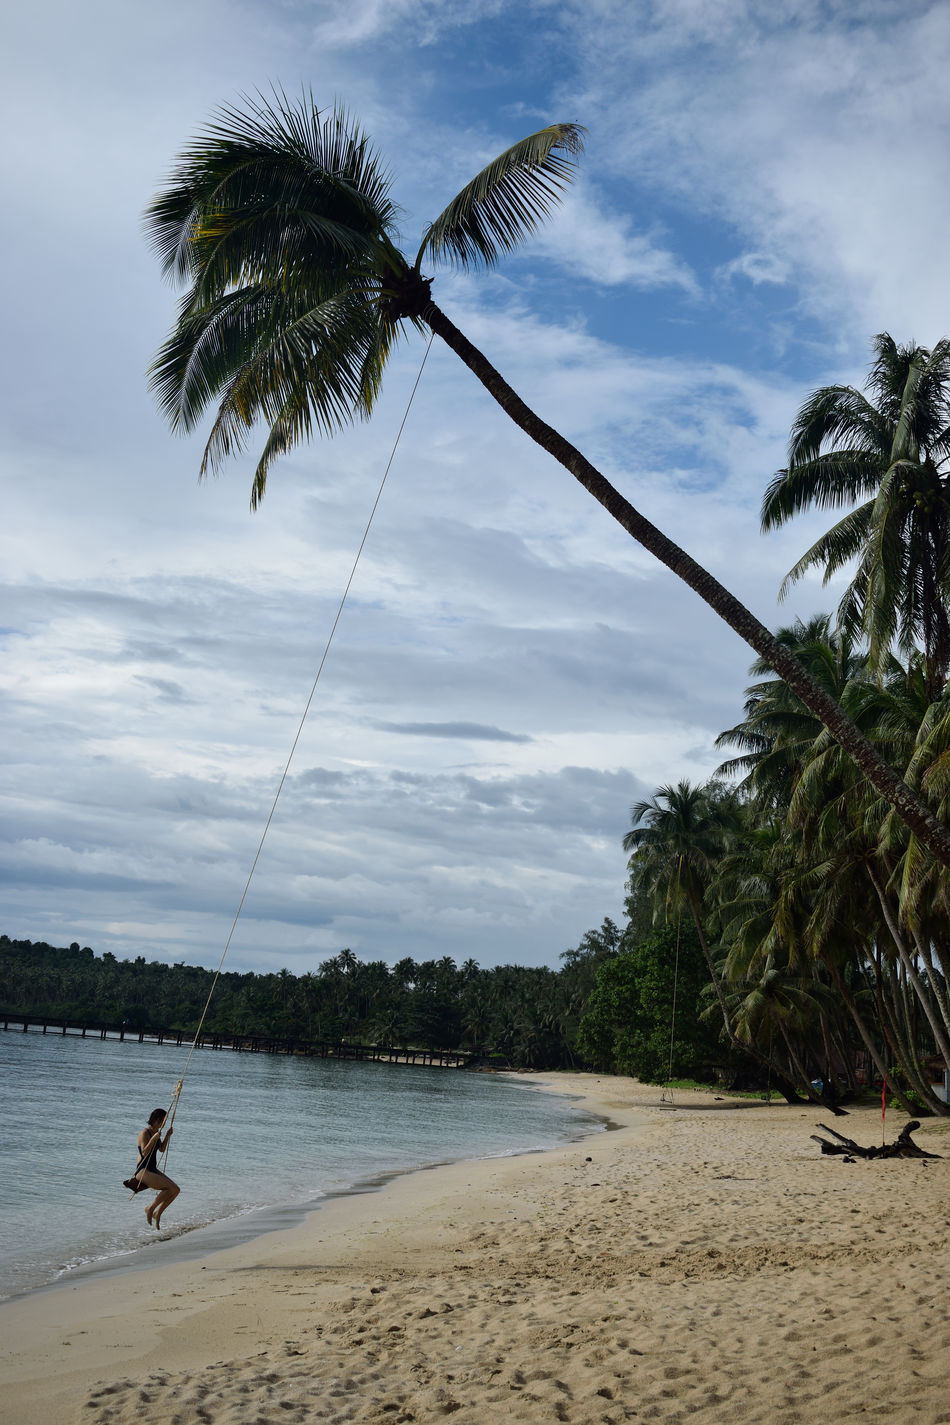 Beach Beauty In Nature Cloud - Sky Day Horizon Over Water Nature One Person Outdoors Palm Tree People Scenics Sea Sky Swing Tranquil Scene Tree Water Thailand Amazing Thailand Swing Swing Swing Koh Kood Travel Photography Wanderlust Backpacking My Year My View Miles Away